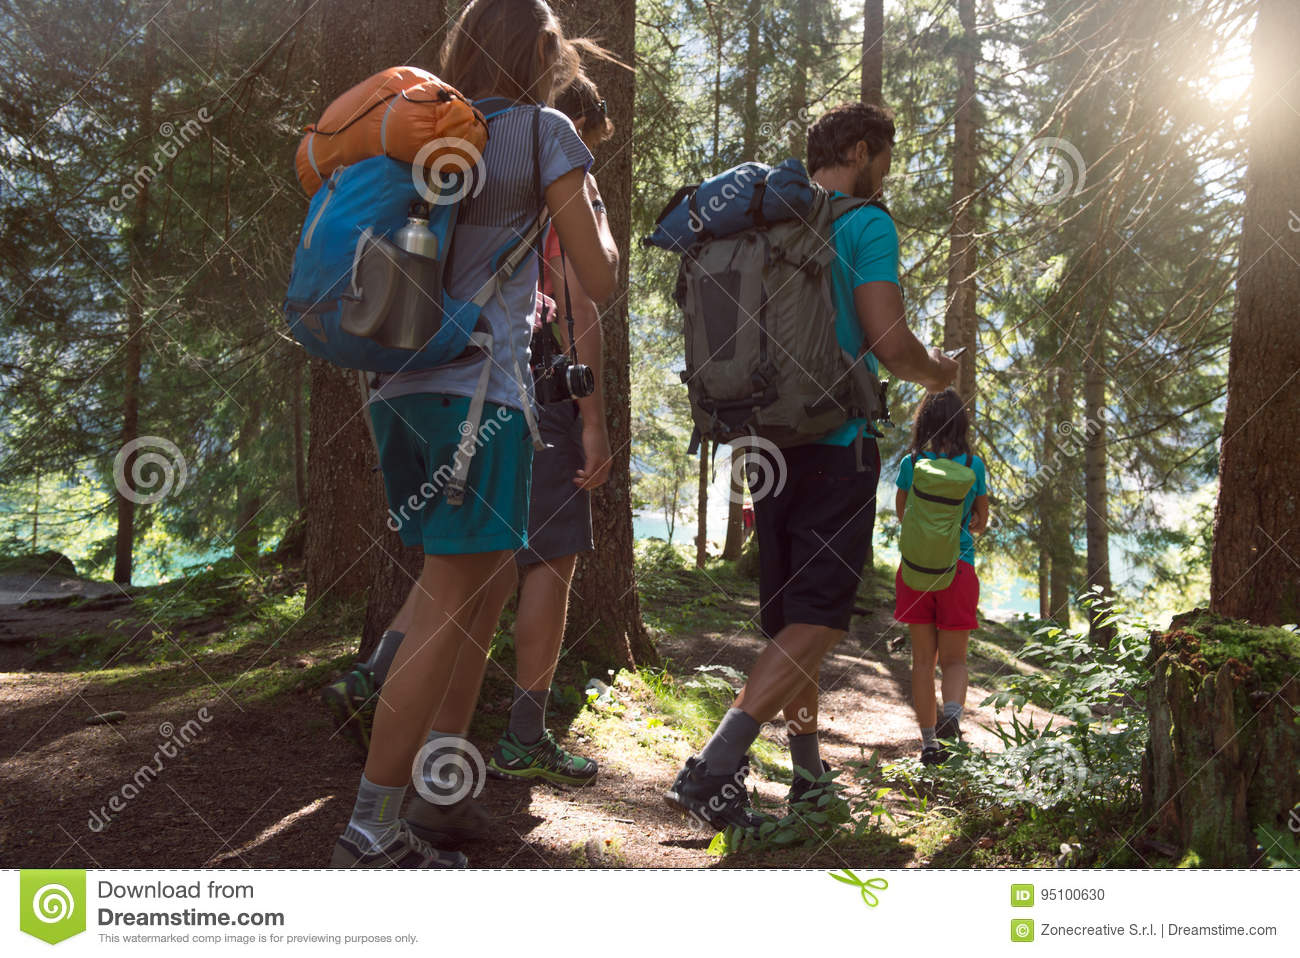 Four man and woman walking along hiking trail path in forest woods during sunny day. Group of friends people summer